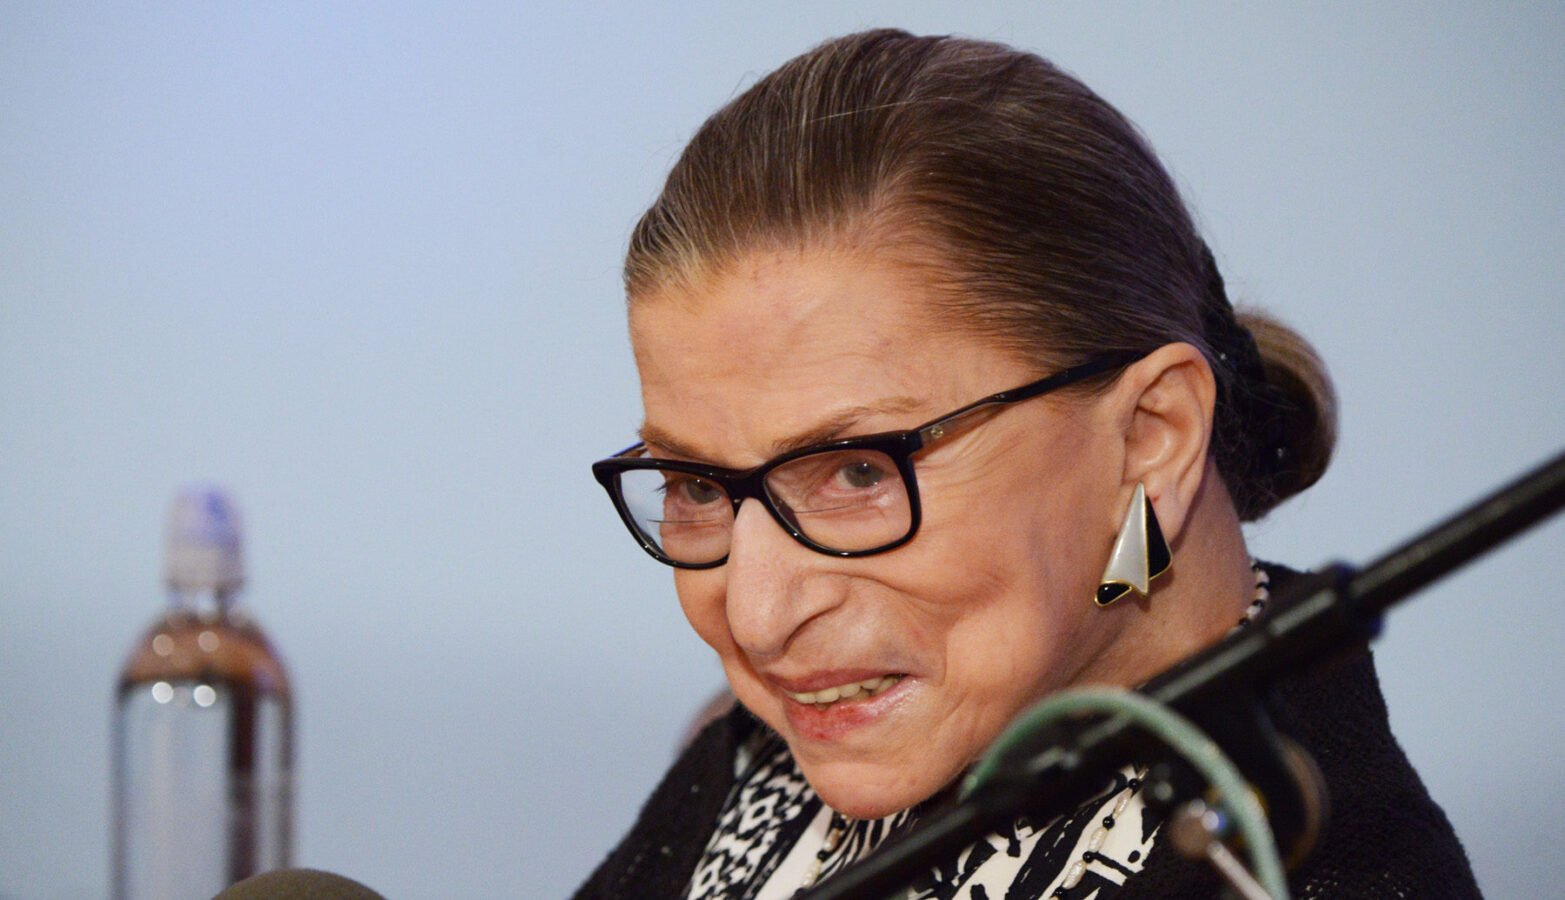 A More Perfect Union: A Musical Tribute to Ruth Bader Ginsburg